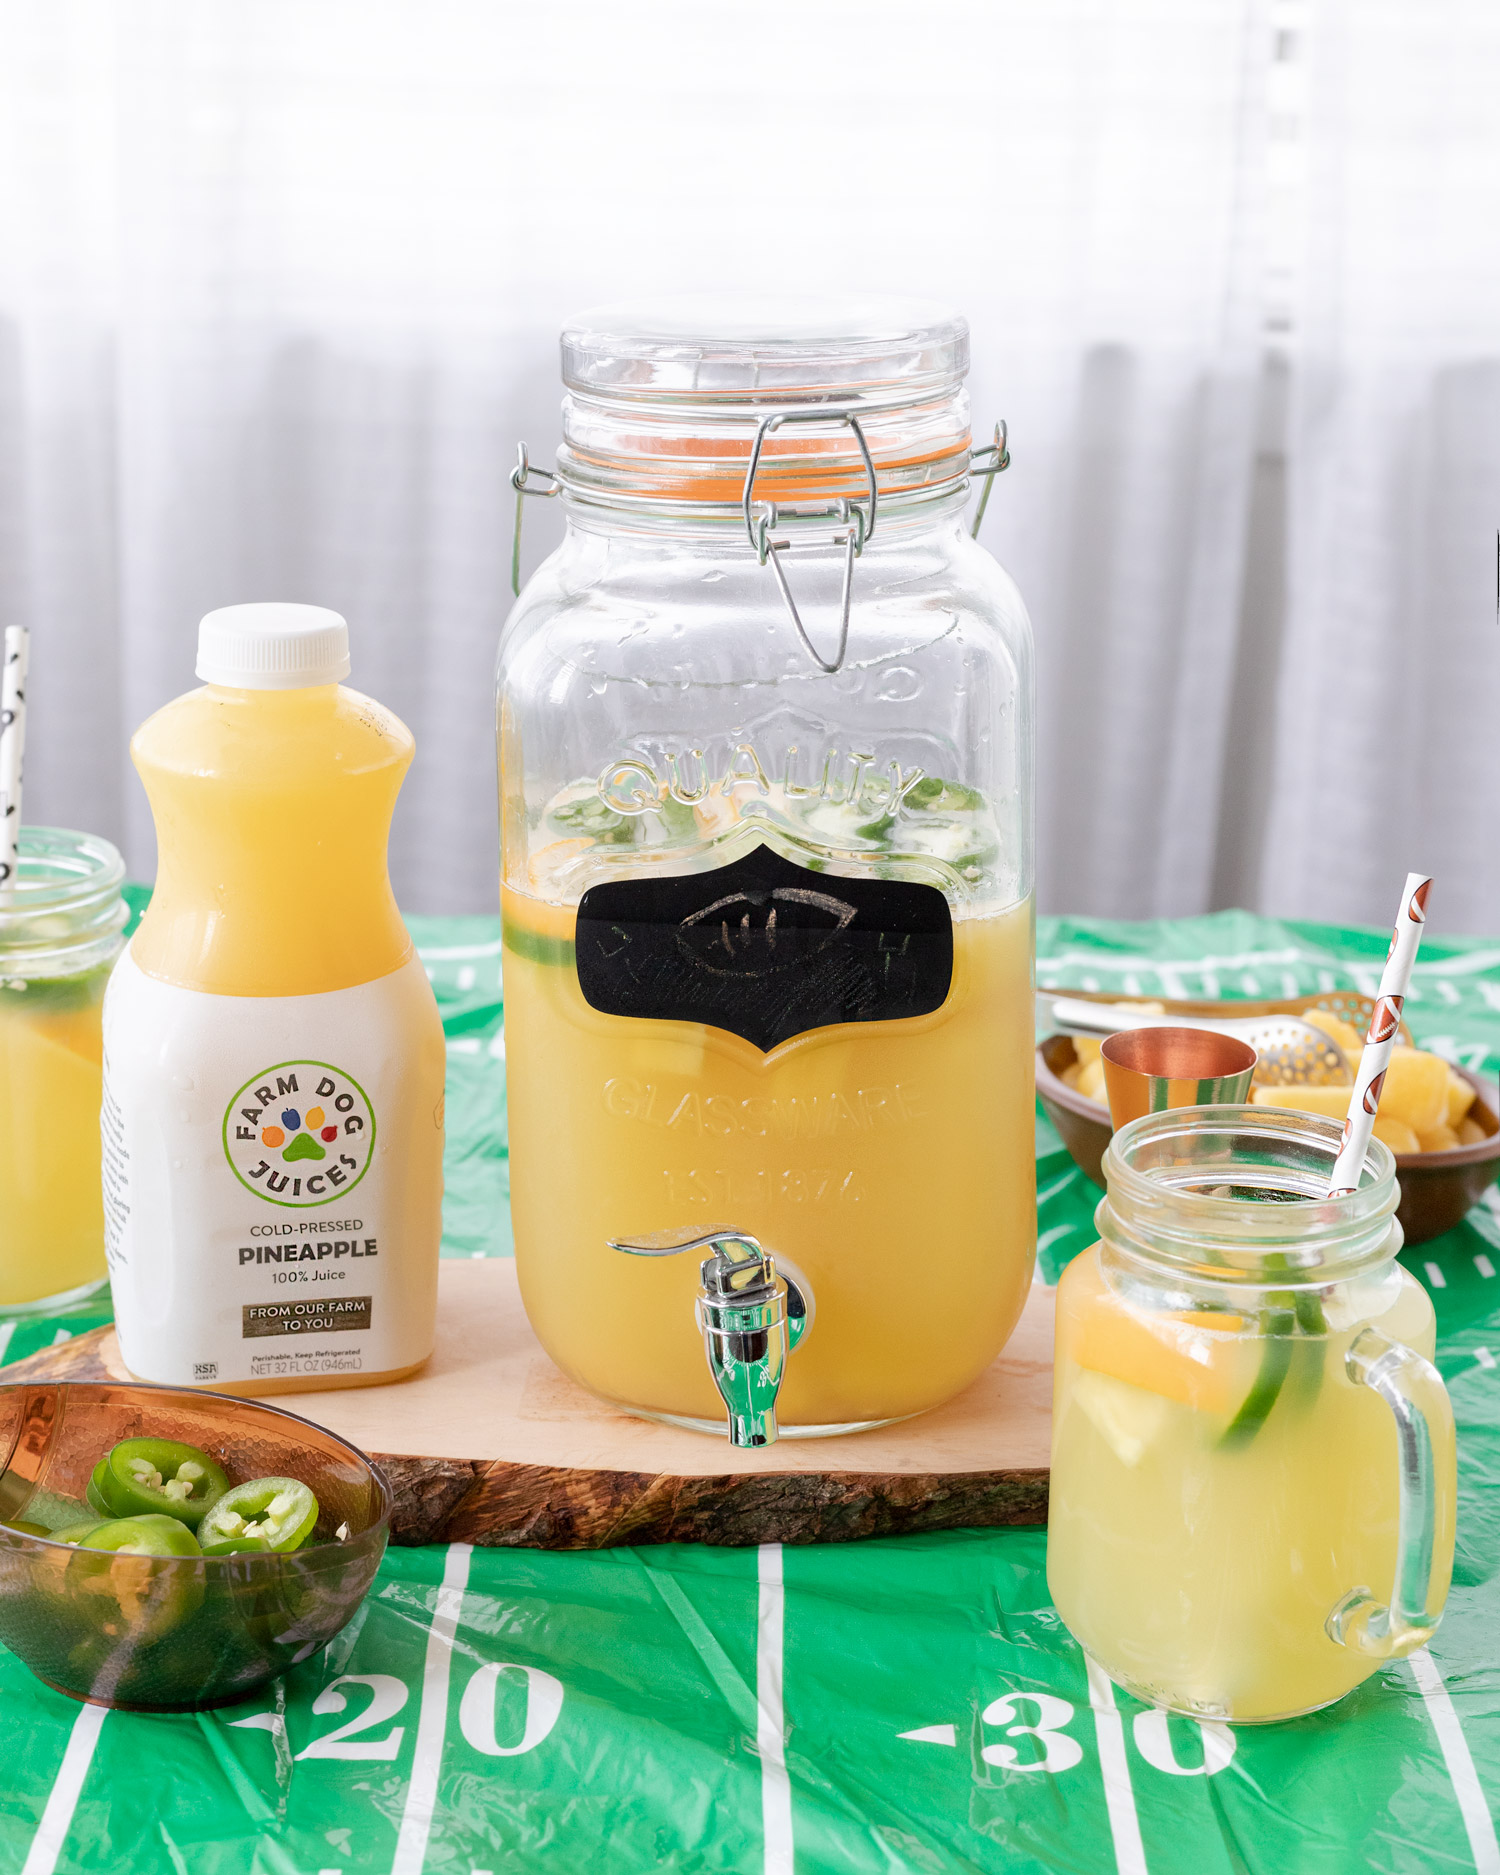 Jalapeno Pineapple Lemonade Punch Elle Talk,Tiny House Trailers